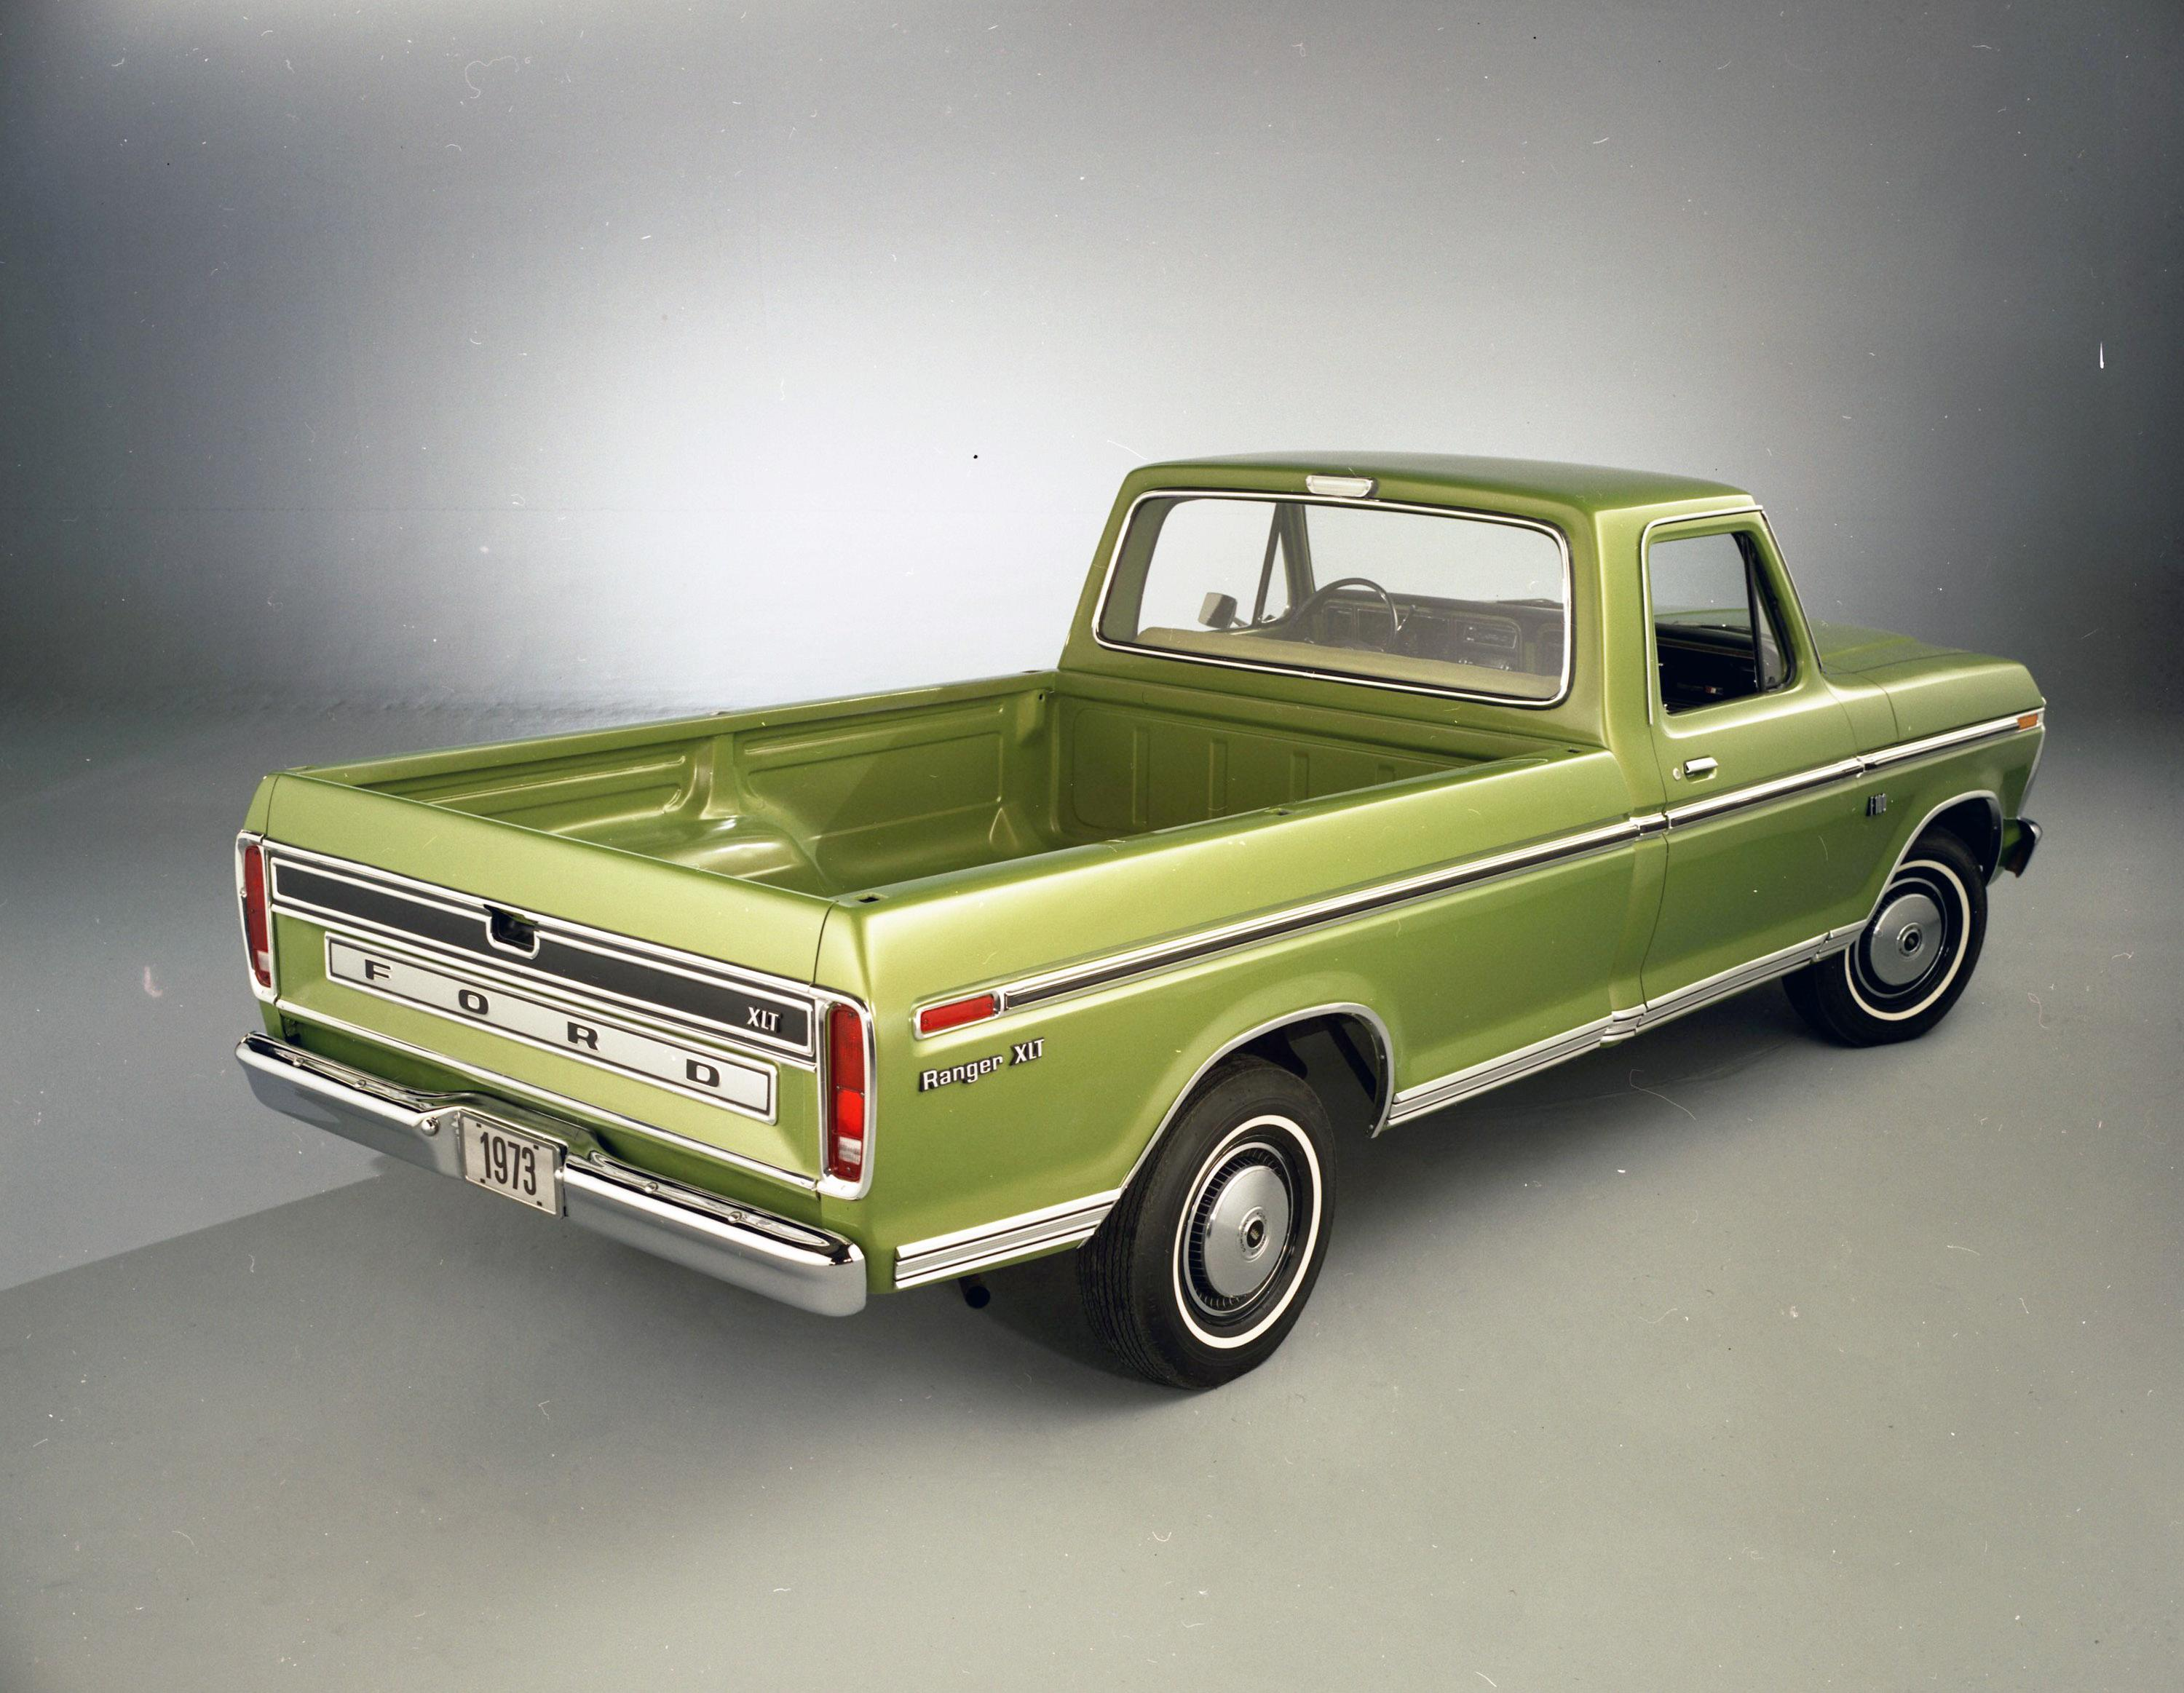 The Complete Book Of Classic Ford F Series Pickups Every Model From 1970 F100 Ranger Xlt View Larger